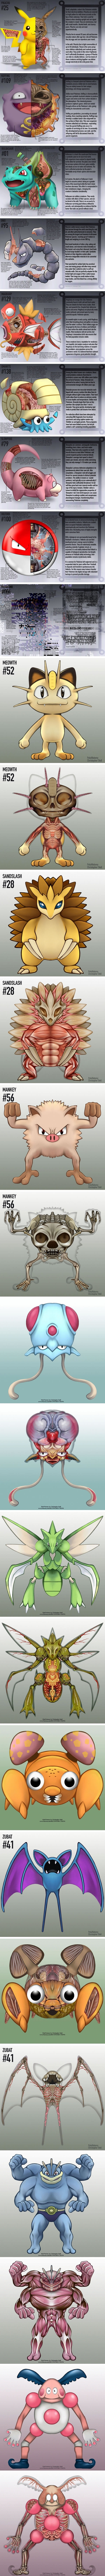 Artist creates Pokemon with realistic anatomy